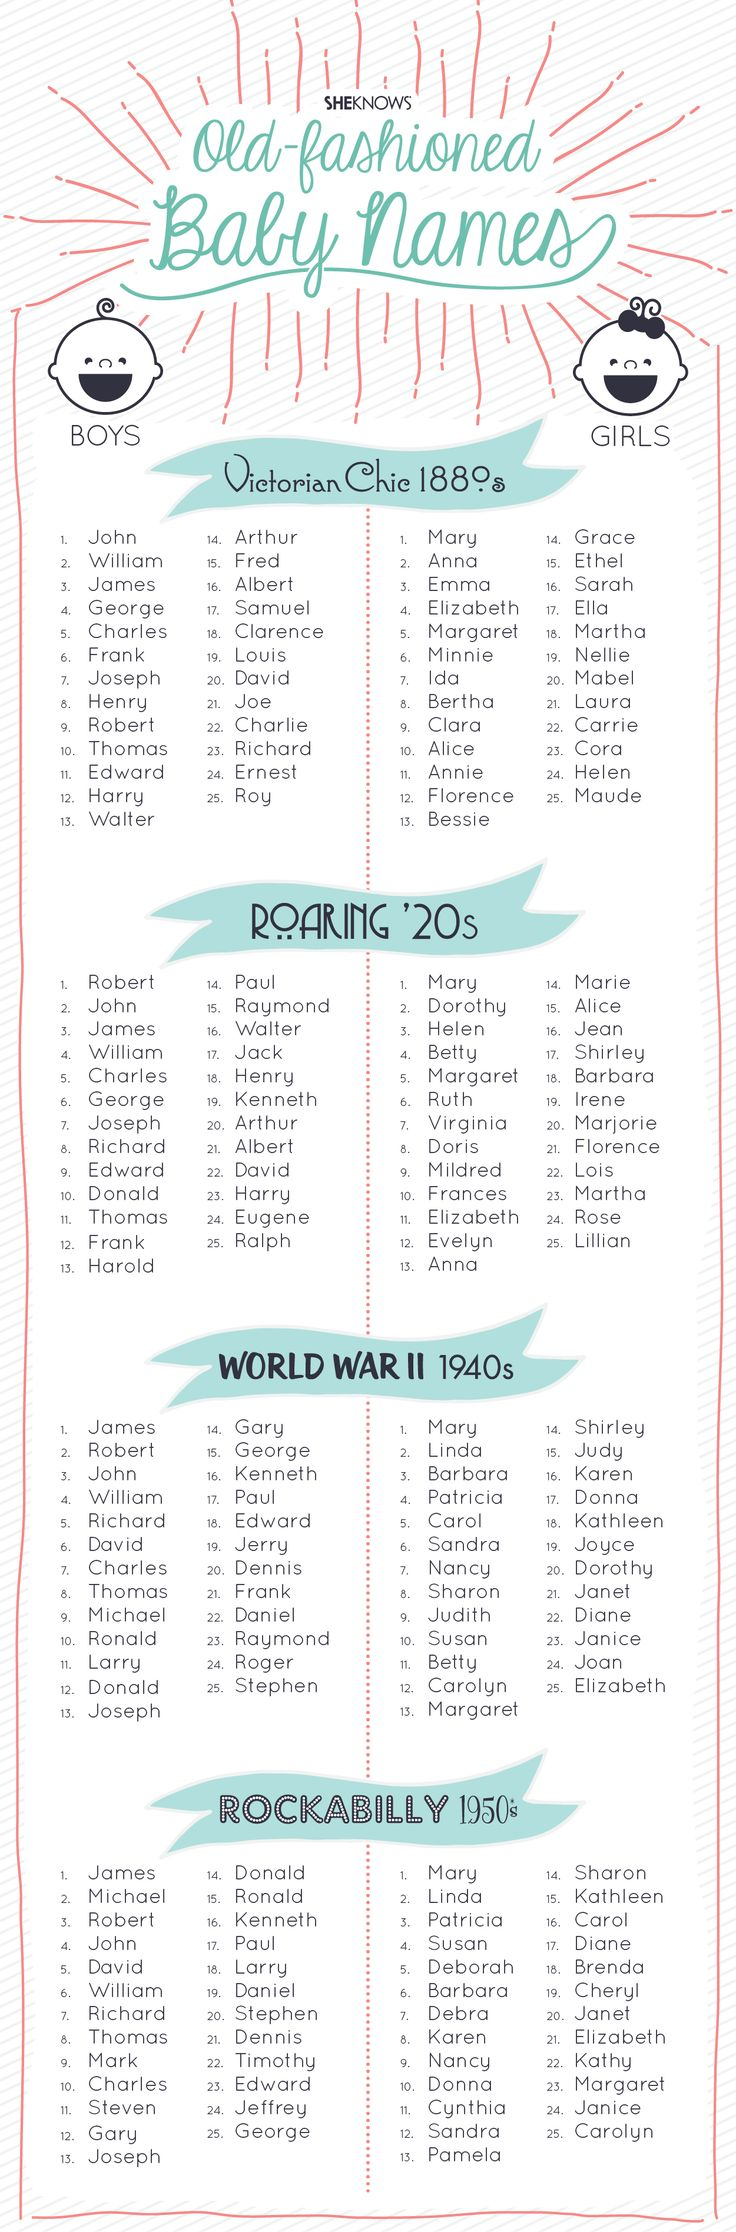 Classic baby names graphic | Sheknows.com ... for all those times I'm searching for character names